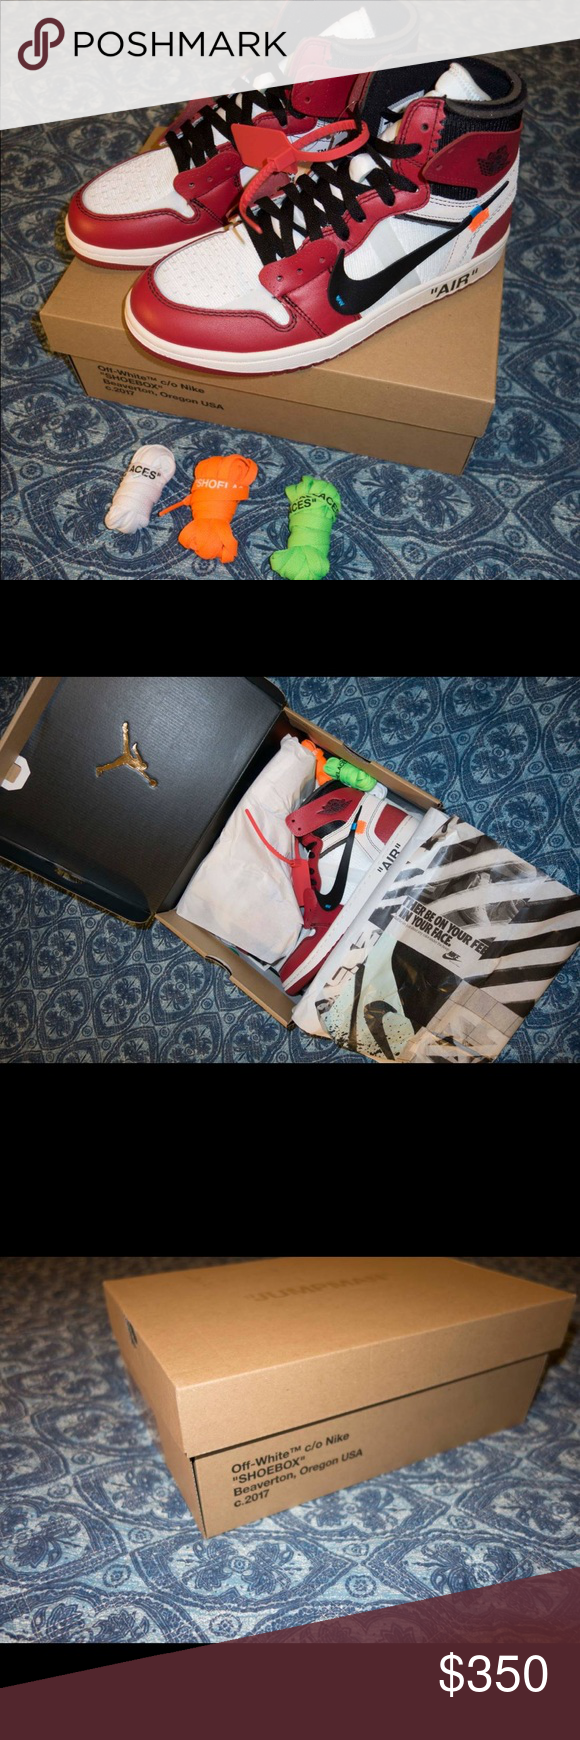 d8d21185f2be9f Off White Air Jordan 1 These pairs are the best UA pairs out. Unauthorized.  Can get up to size 13! Let me know asap. If interested leave your number to  ...